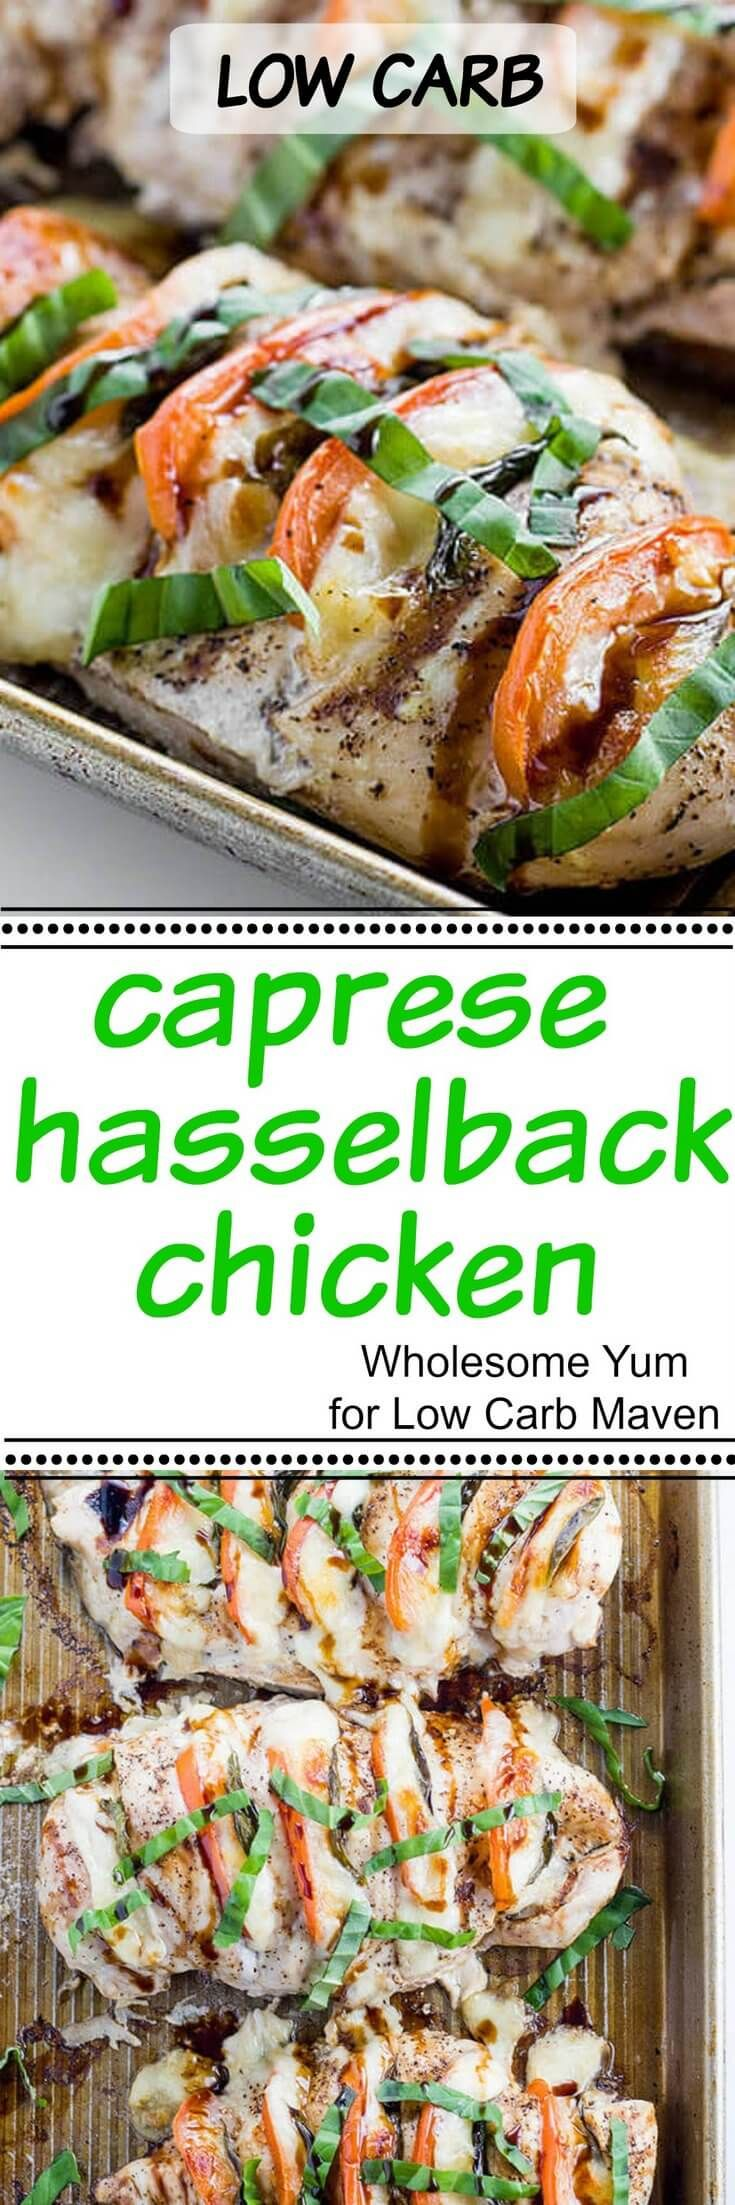 This Caprese Hasselback Chicken uses fresh mozzarella cheese, basil, & balsamic vinegar for a tasty fast & easy weeknight meal. Low carb, Keto, gluten free.